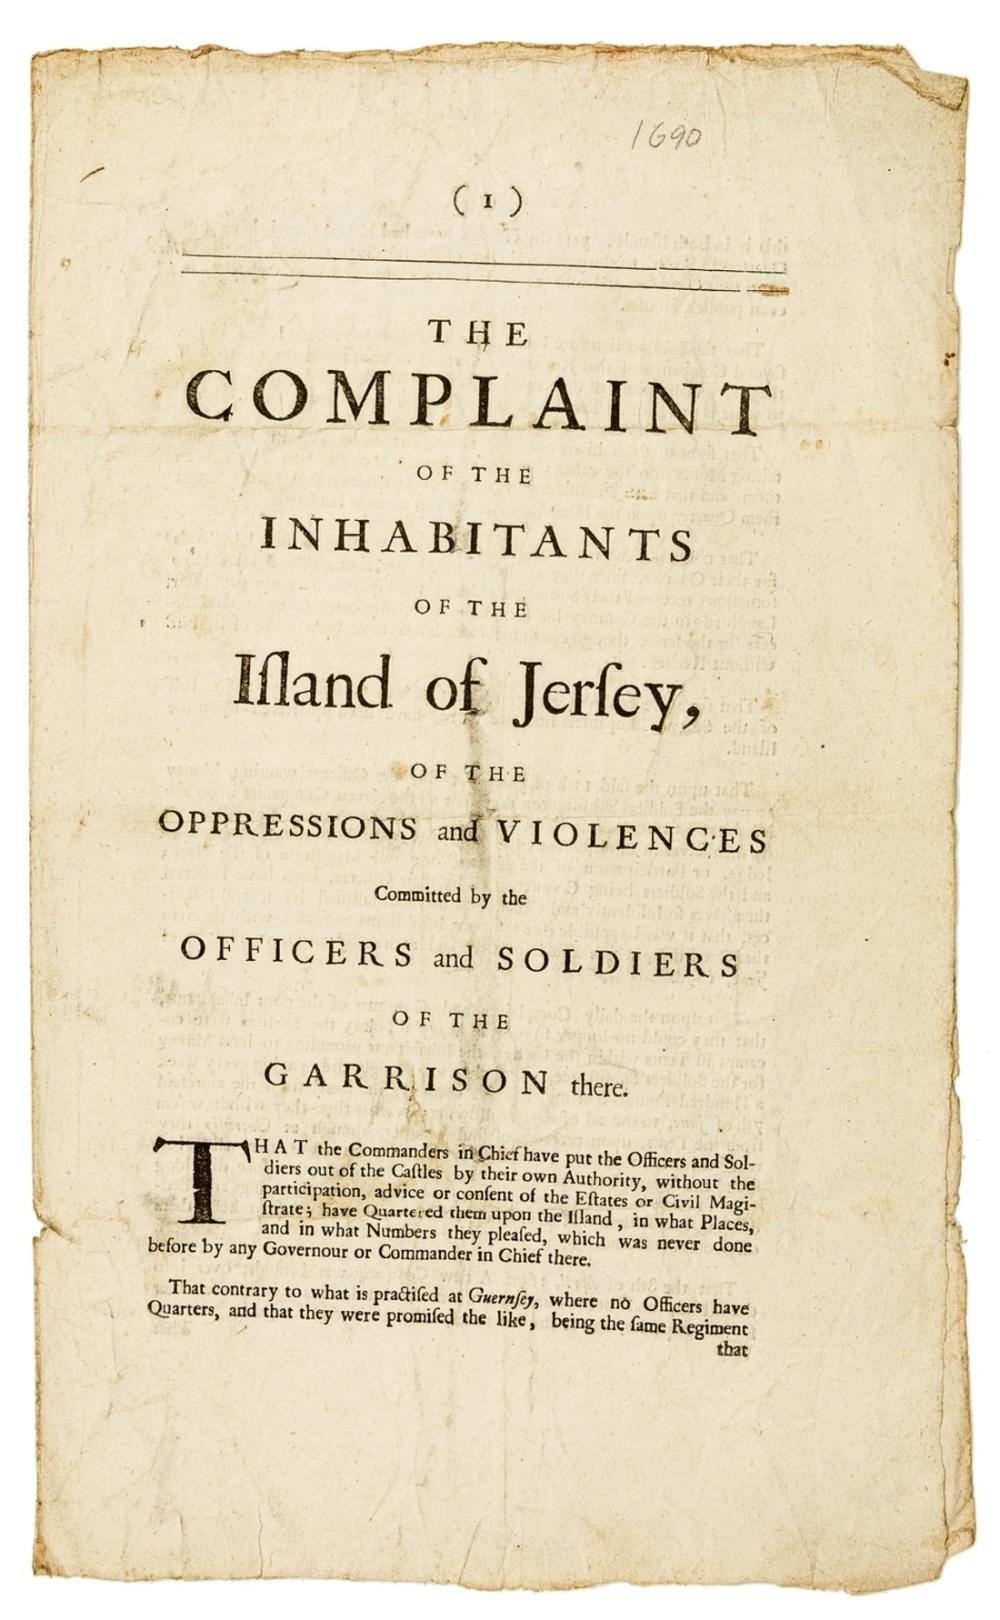 Channel Islands.- Jersey.- Complaint (The) of the Inhabitants of the Island of Jersey, of the Oppressions and Violences committed by the Officers and Soldiers of the Garrison there, the only known …